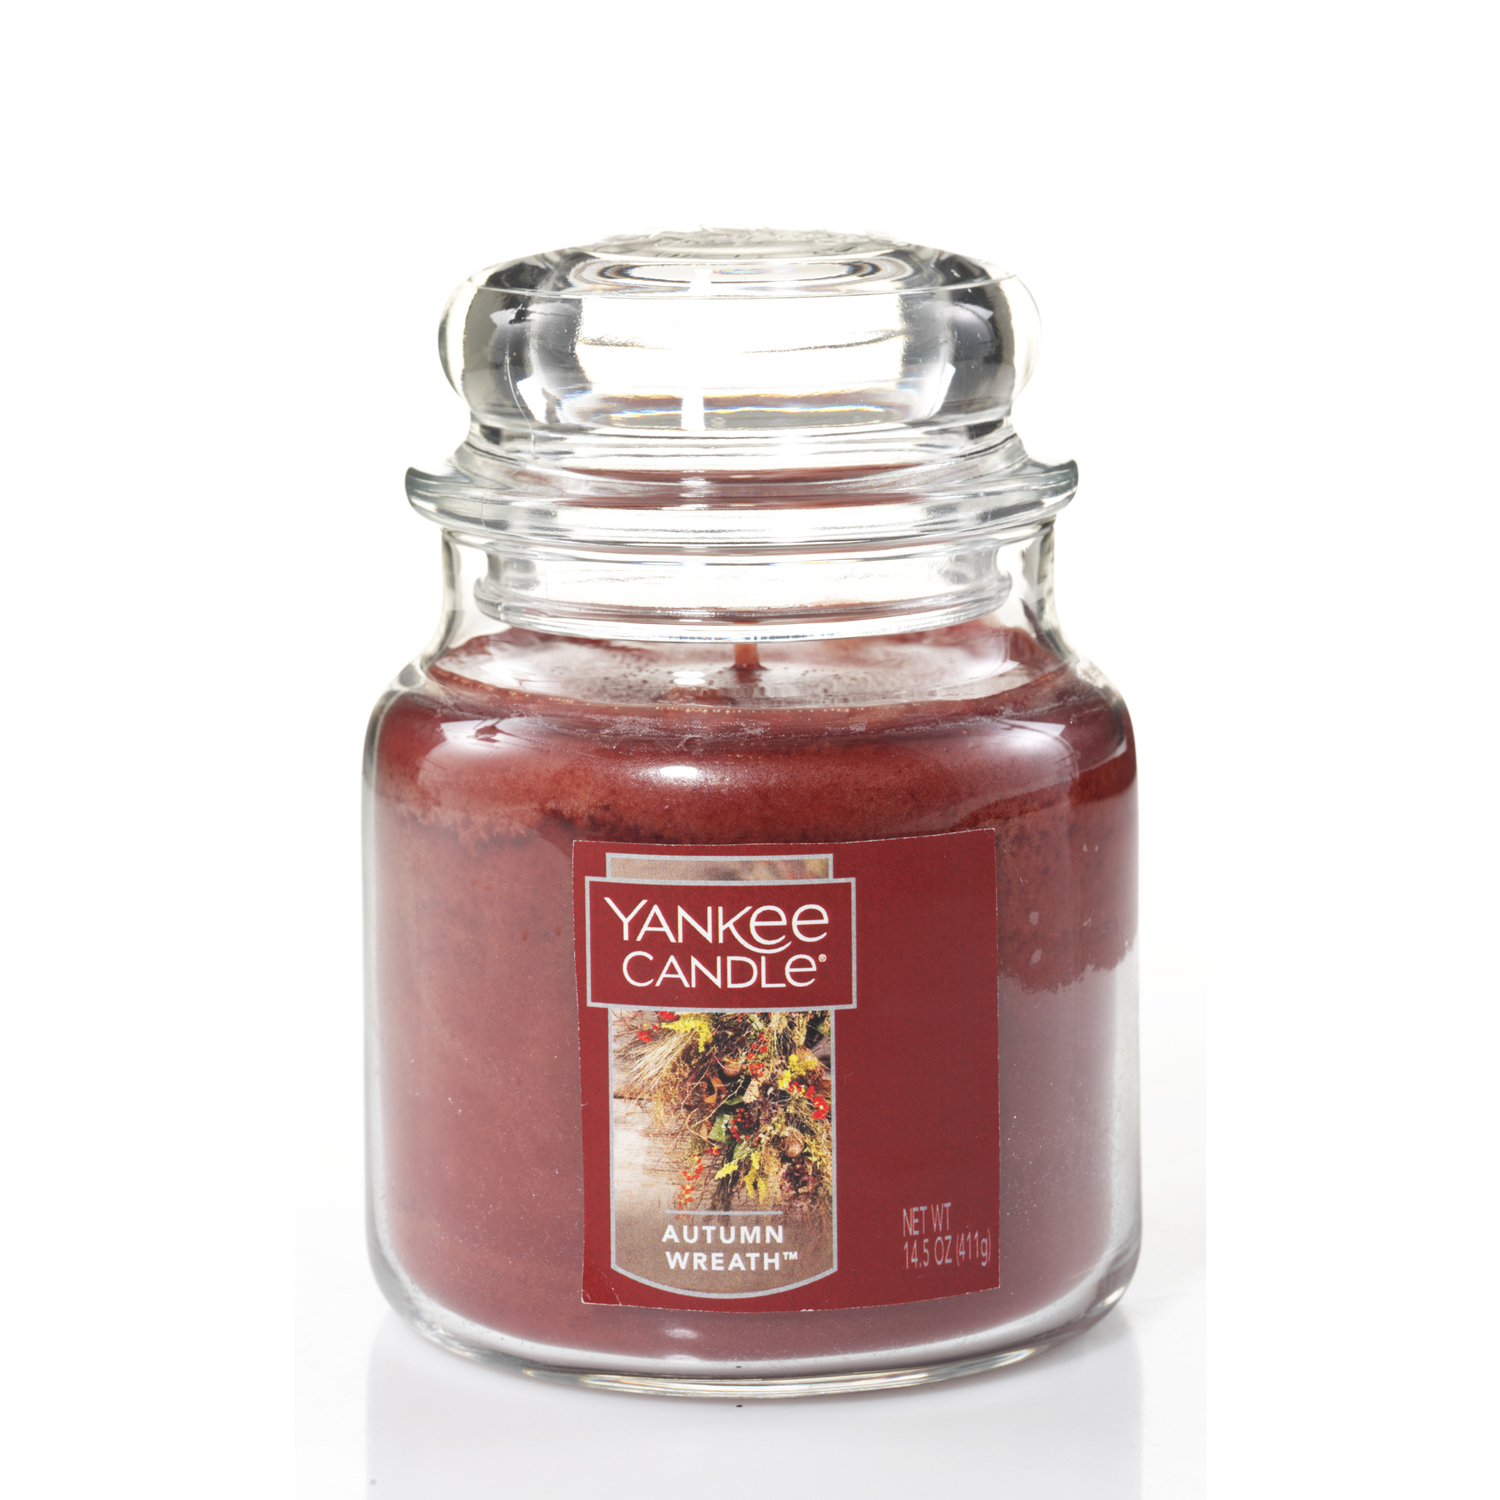 Yankee Candle Large 2-Wick Tumbler Scented Candle, Autumn Wreath by Newell Brands